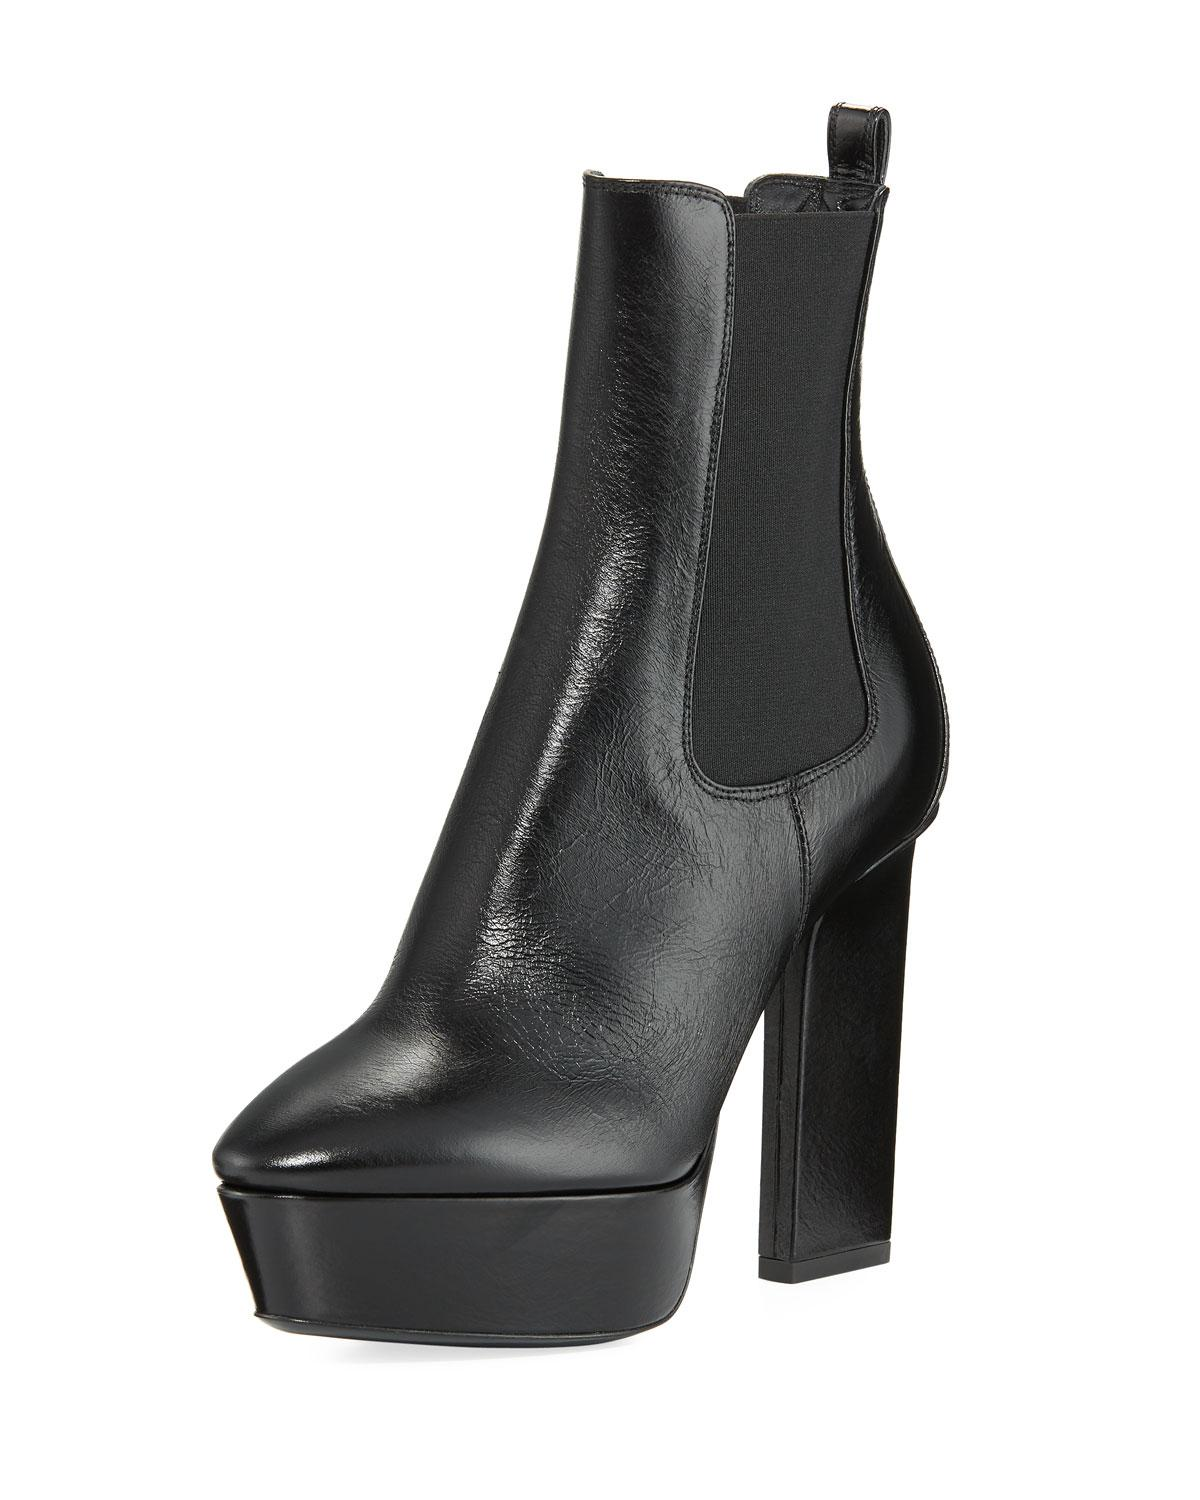 Vika 95 Chelsea Ankle Boot Saint Laurent